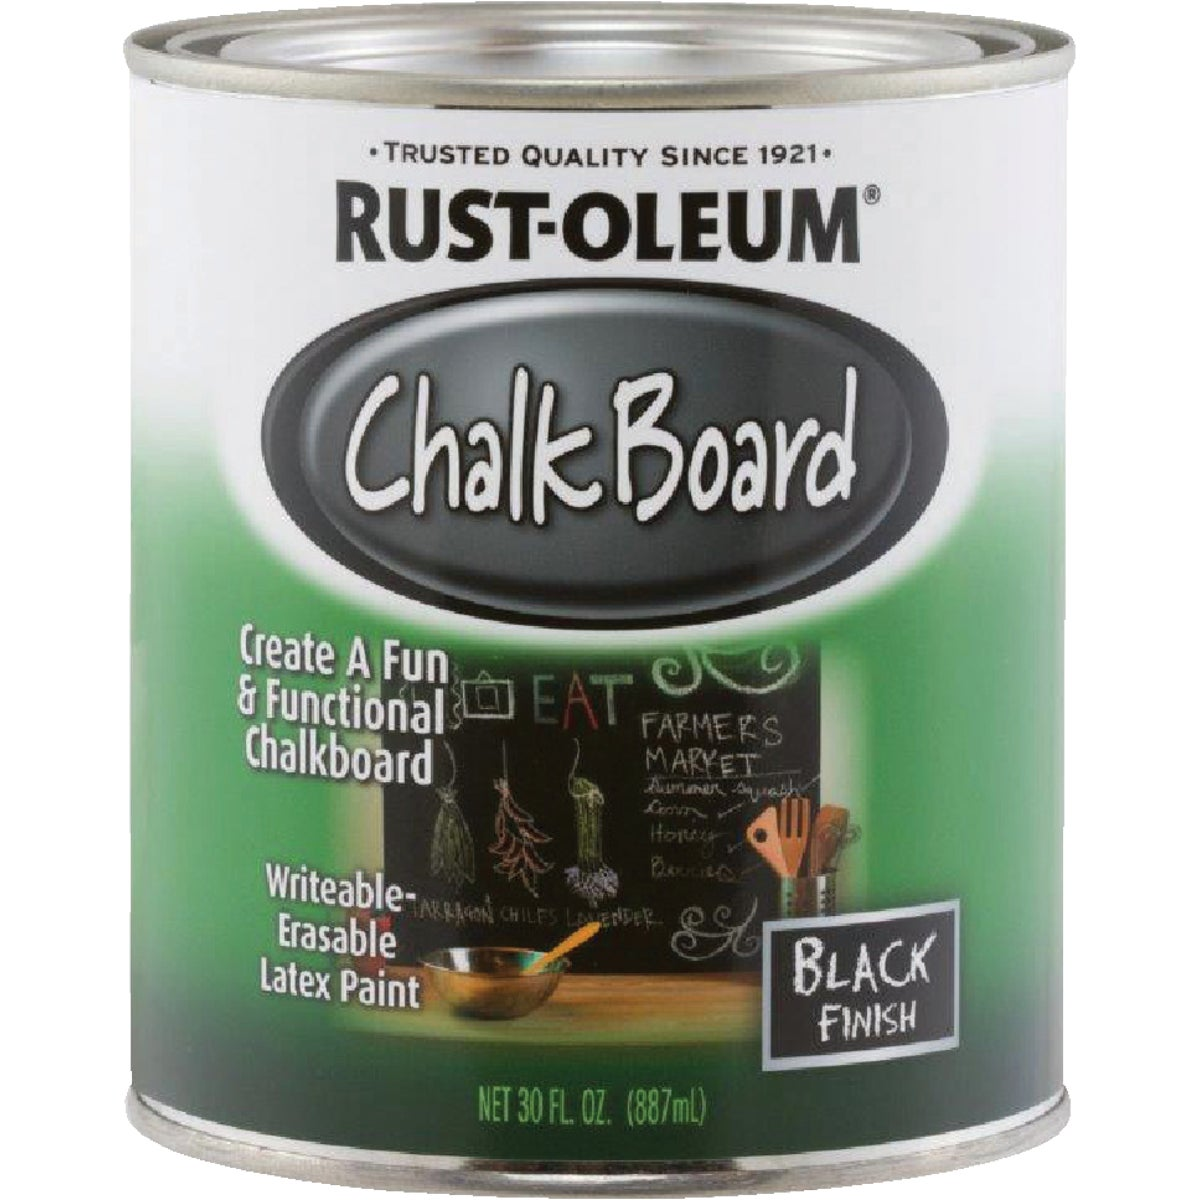 BLACK CHALKBOARD FINISH